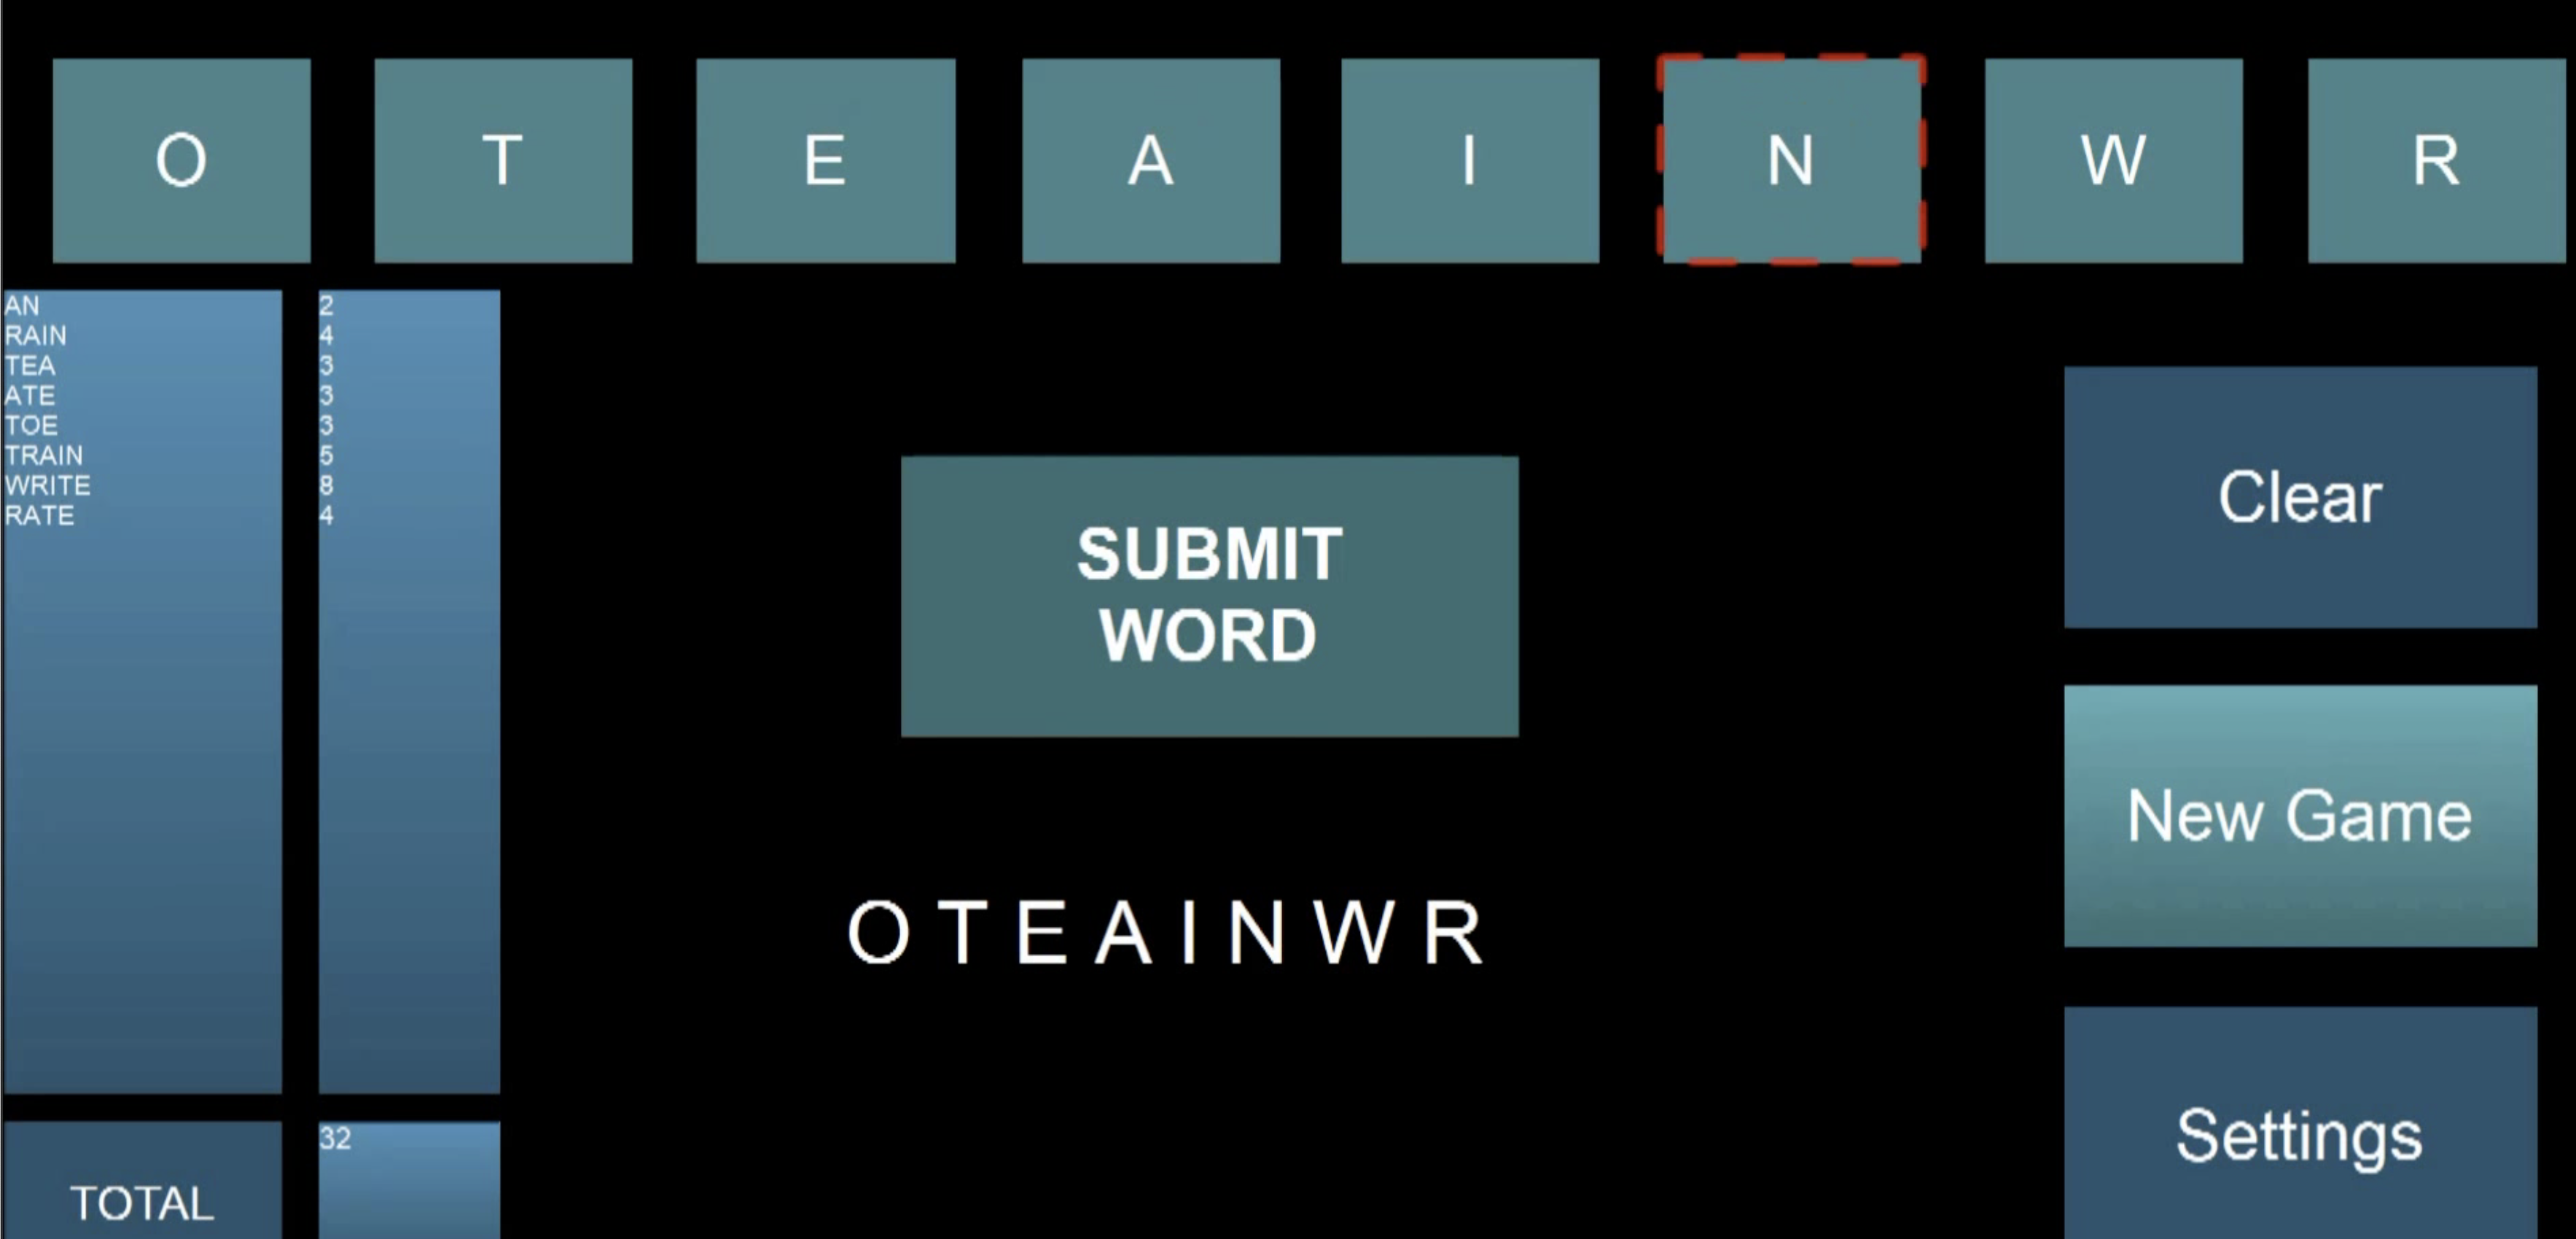 A screenshot of the Anagram game